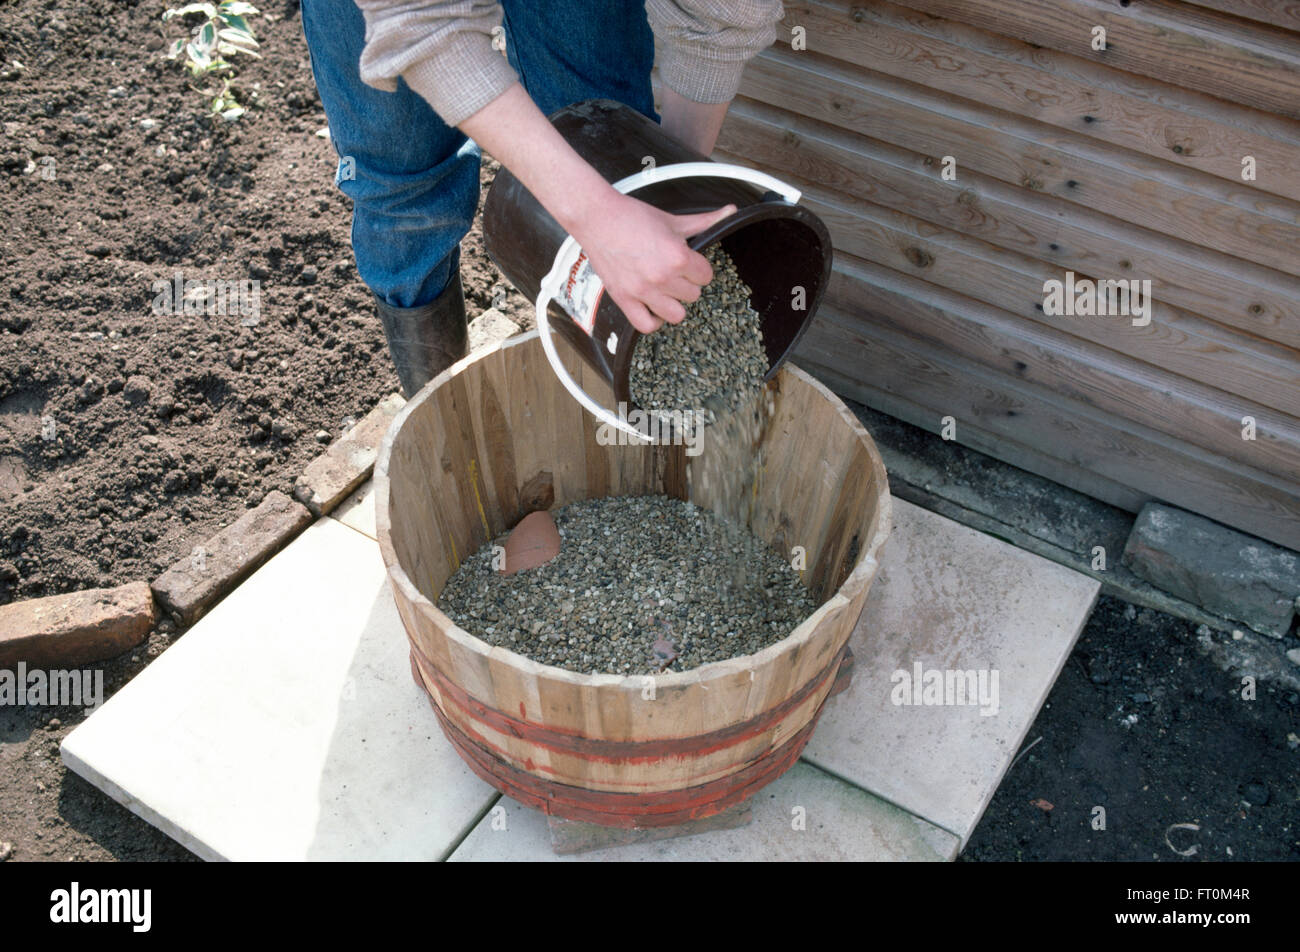 Putting Grit In Its Place >> Close Up Of A Gardener Putting Grit Into A Wooden Barrel Before